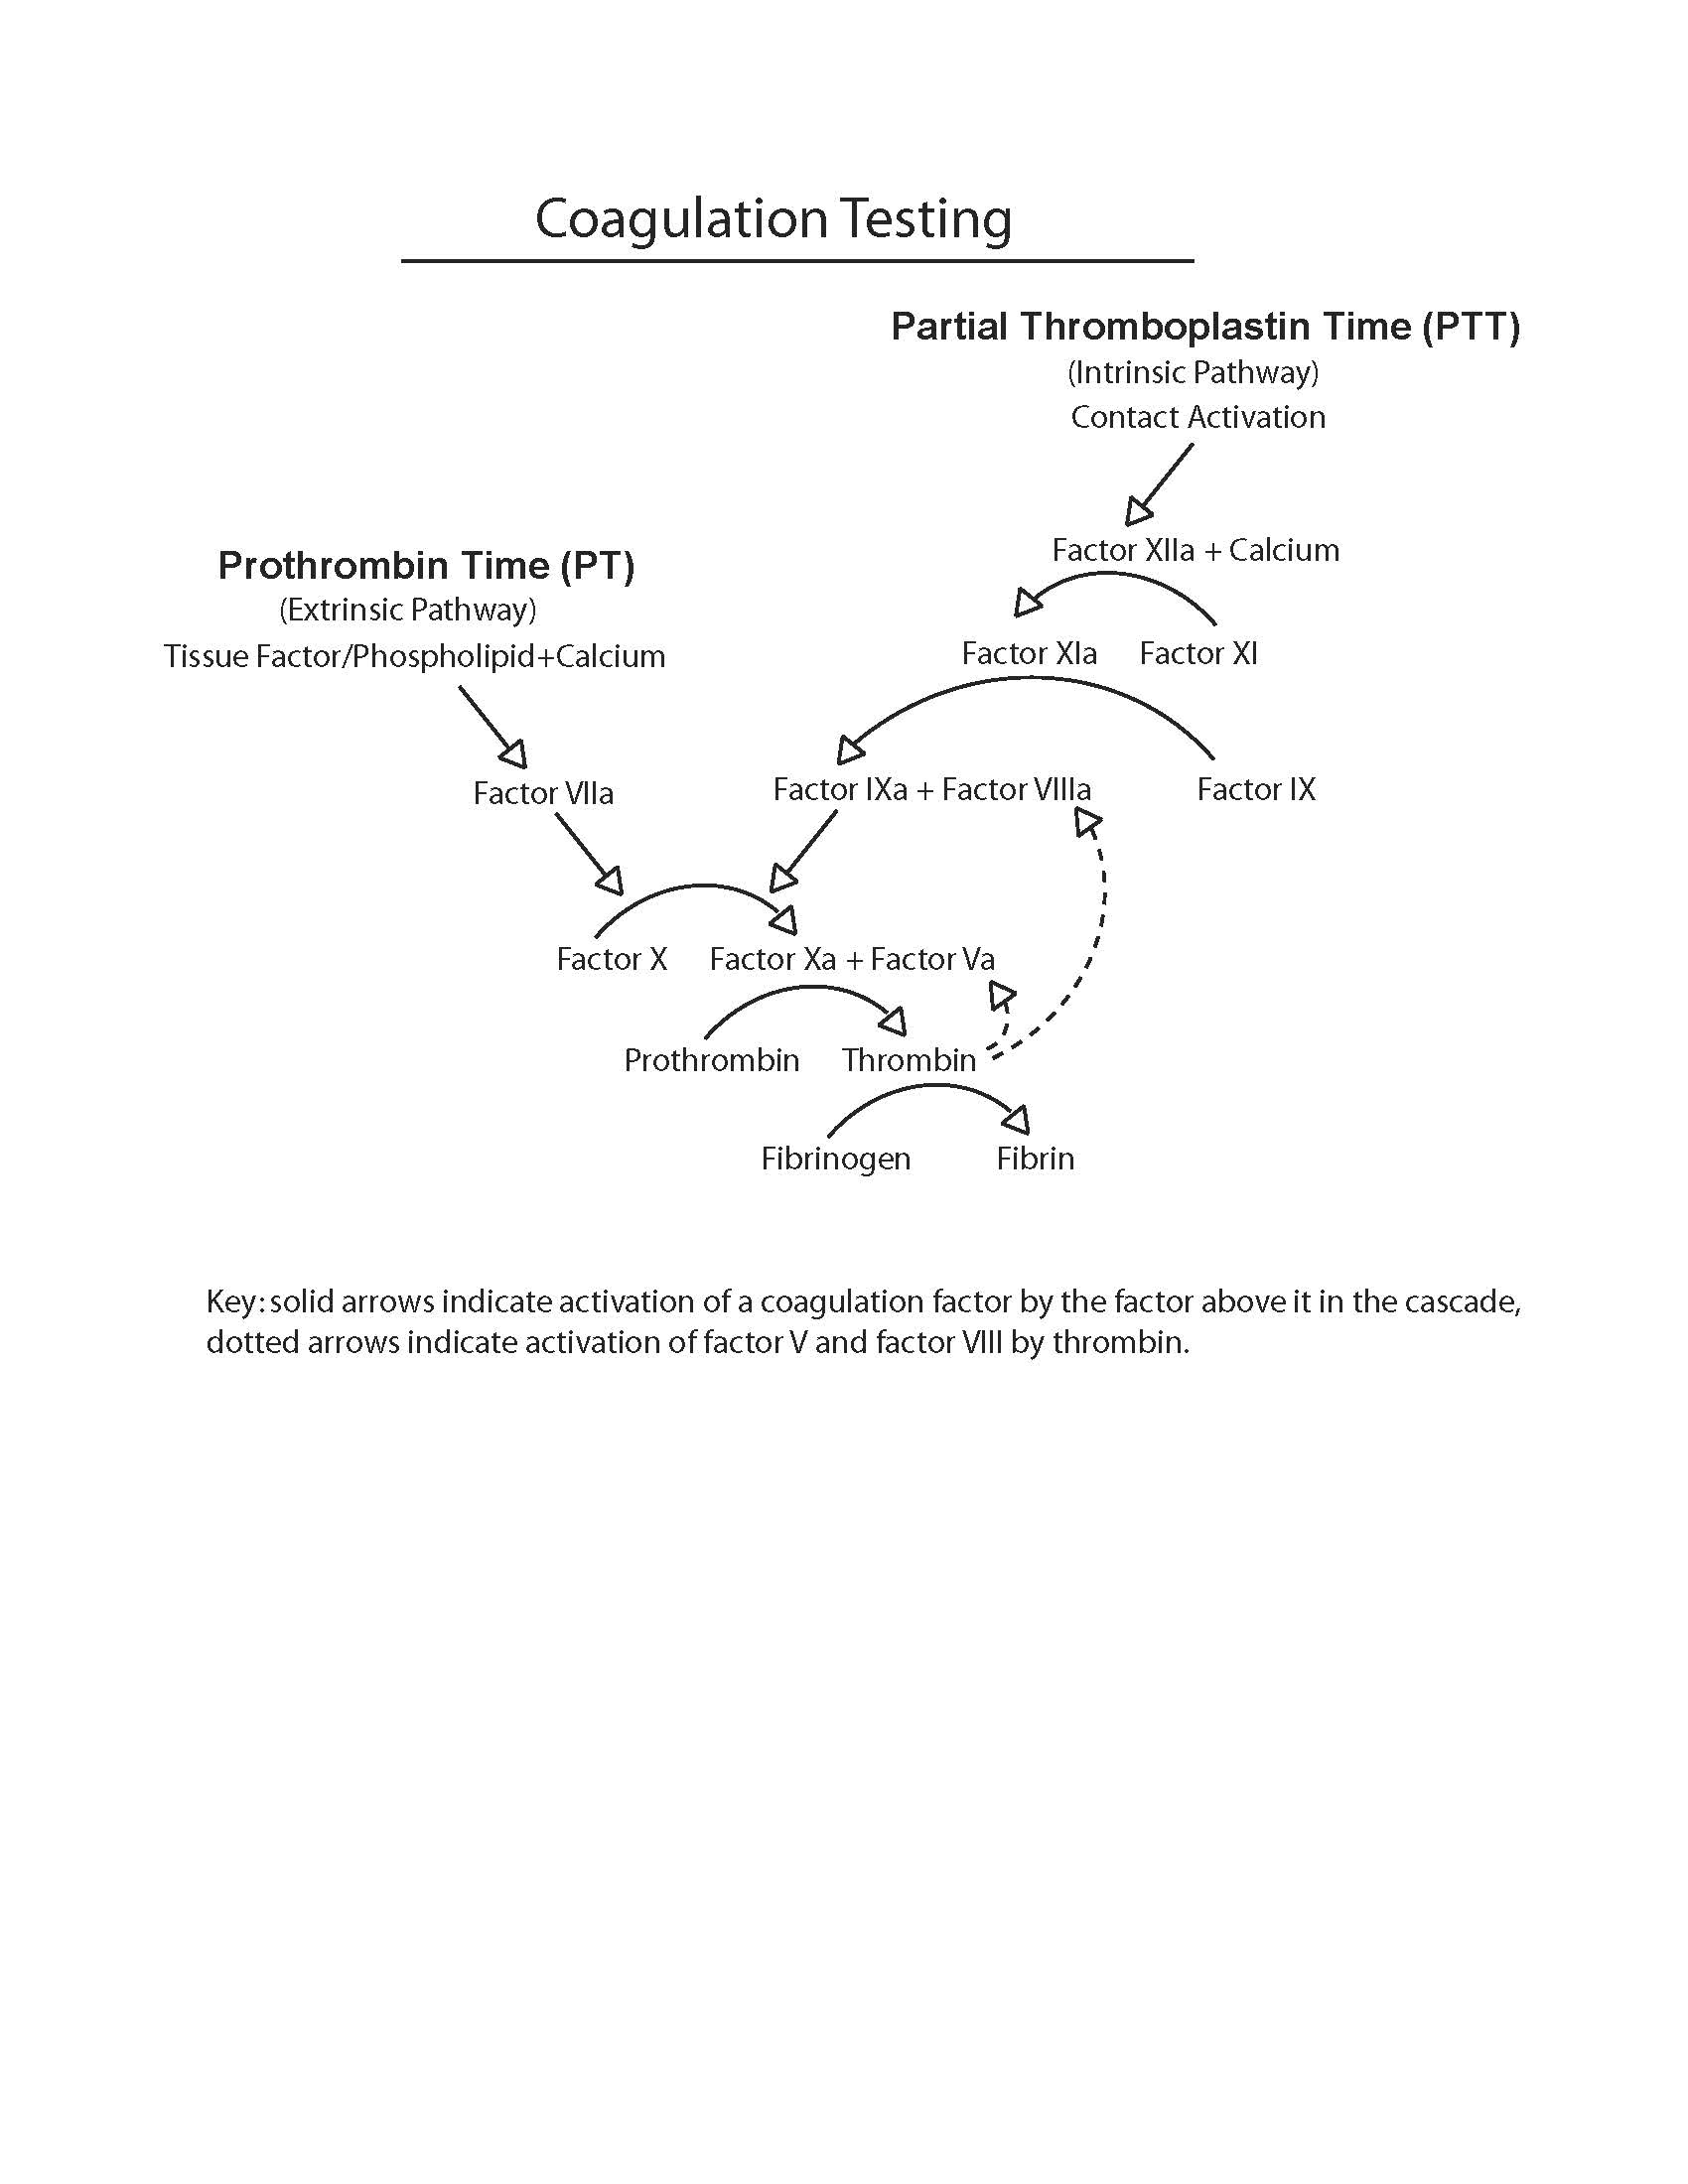 Diagram of the coagulation testing cascade